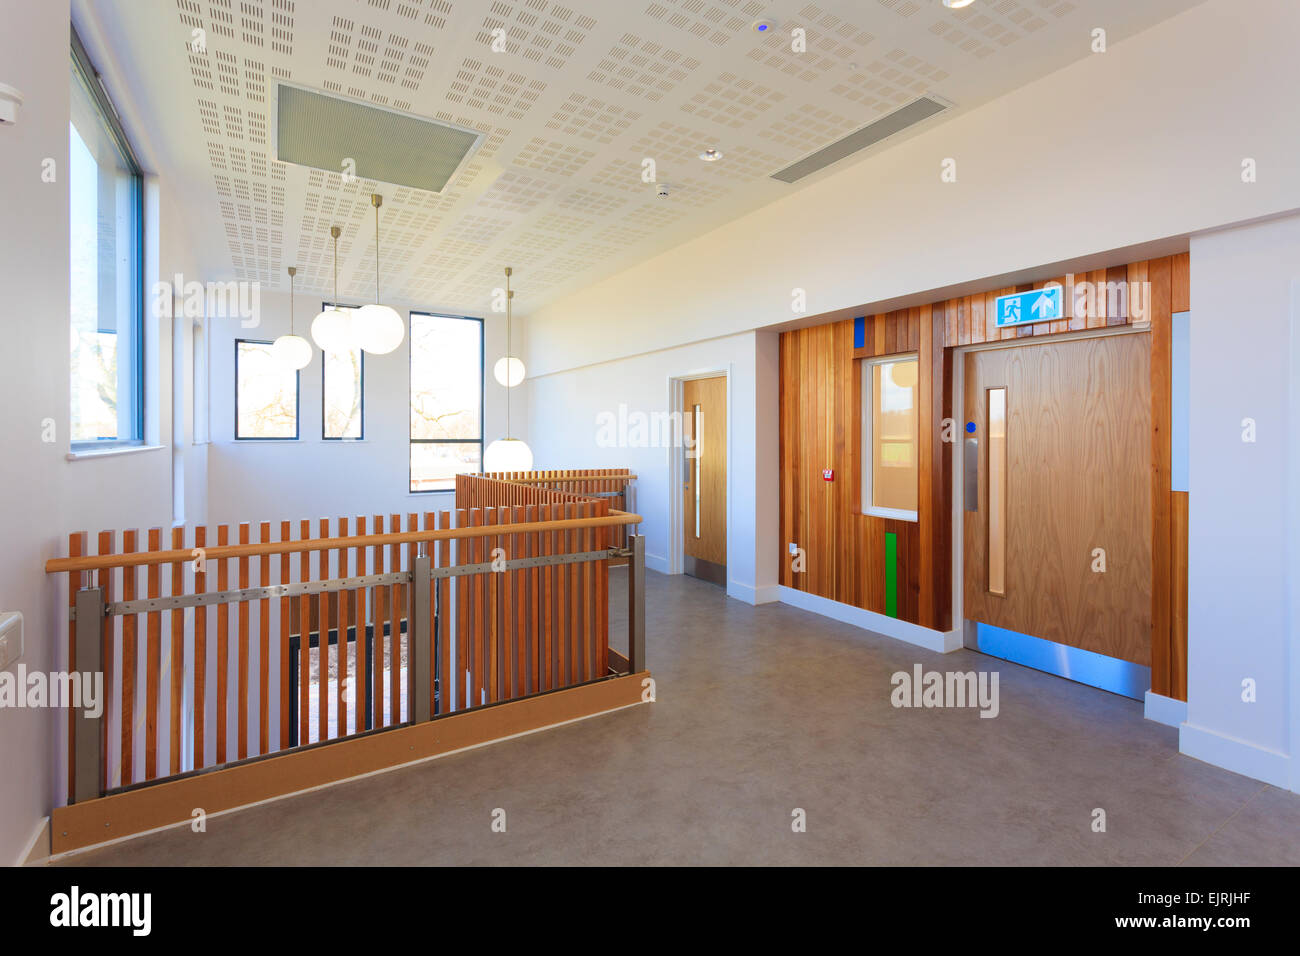 Timber railings and doorway with timberclad surround in modern building without people - Stock Image